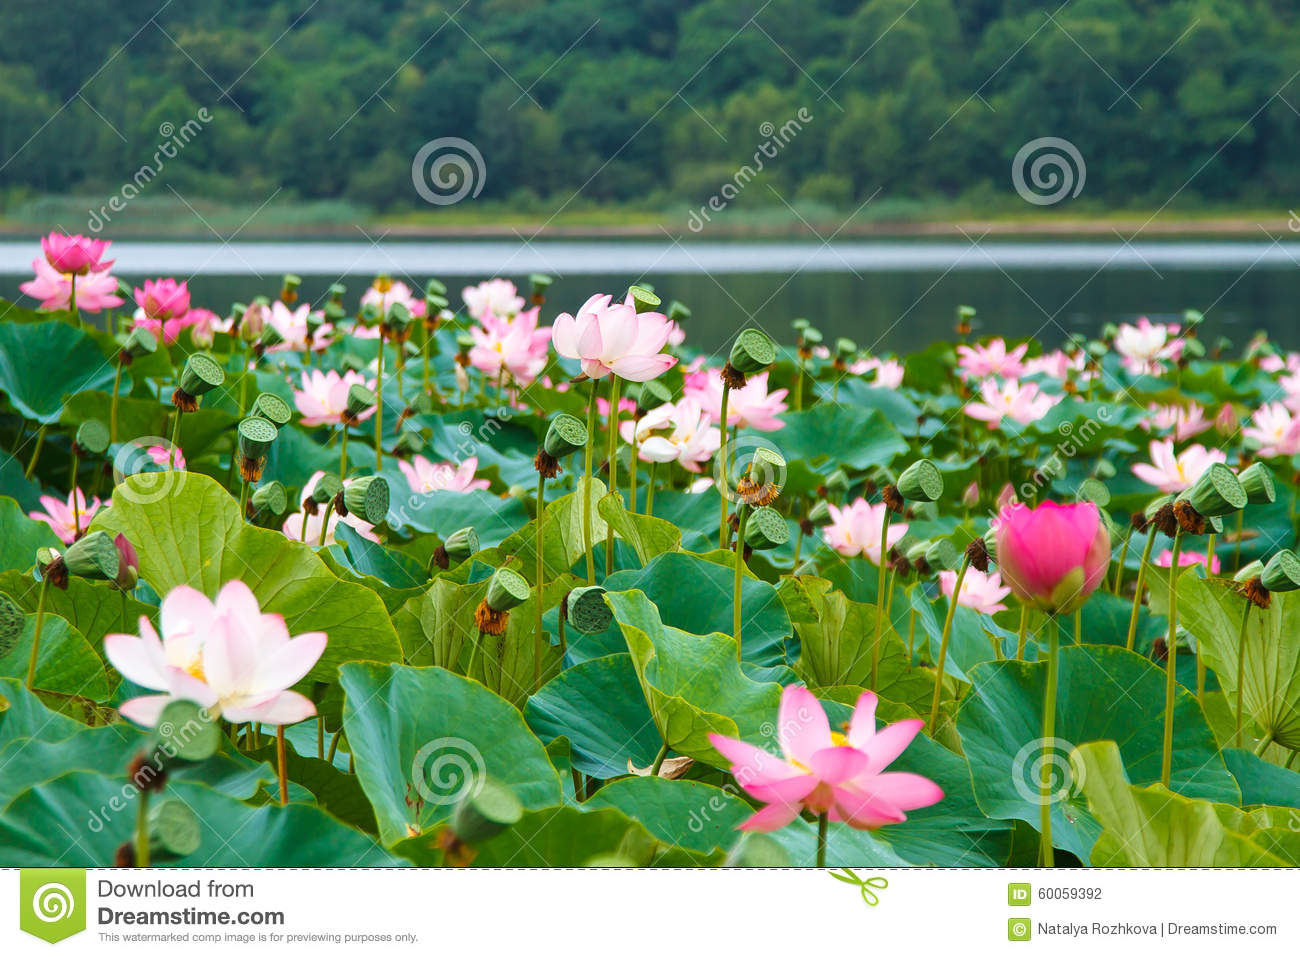 Rare and beautiful lotus flowers stock photo image of lakes rare and beautiful lotus flowers izmirmasajfo